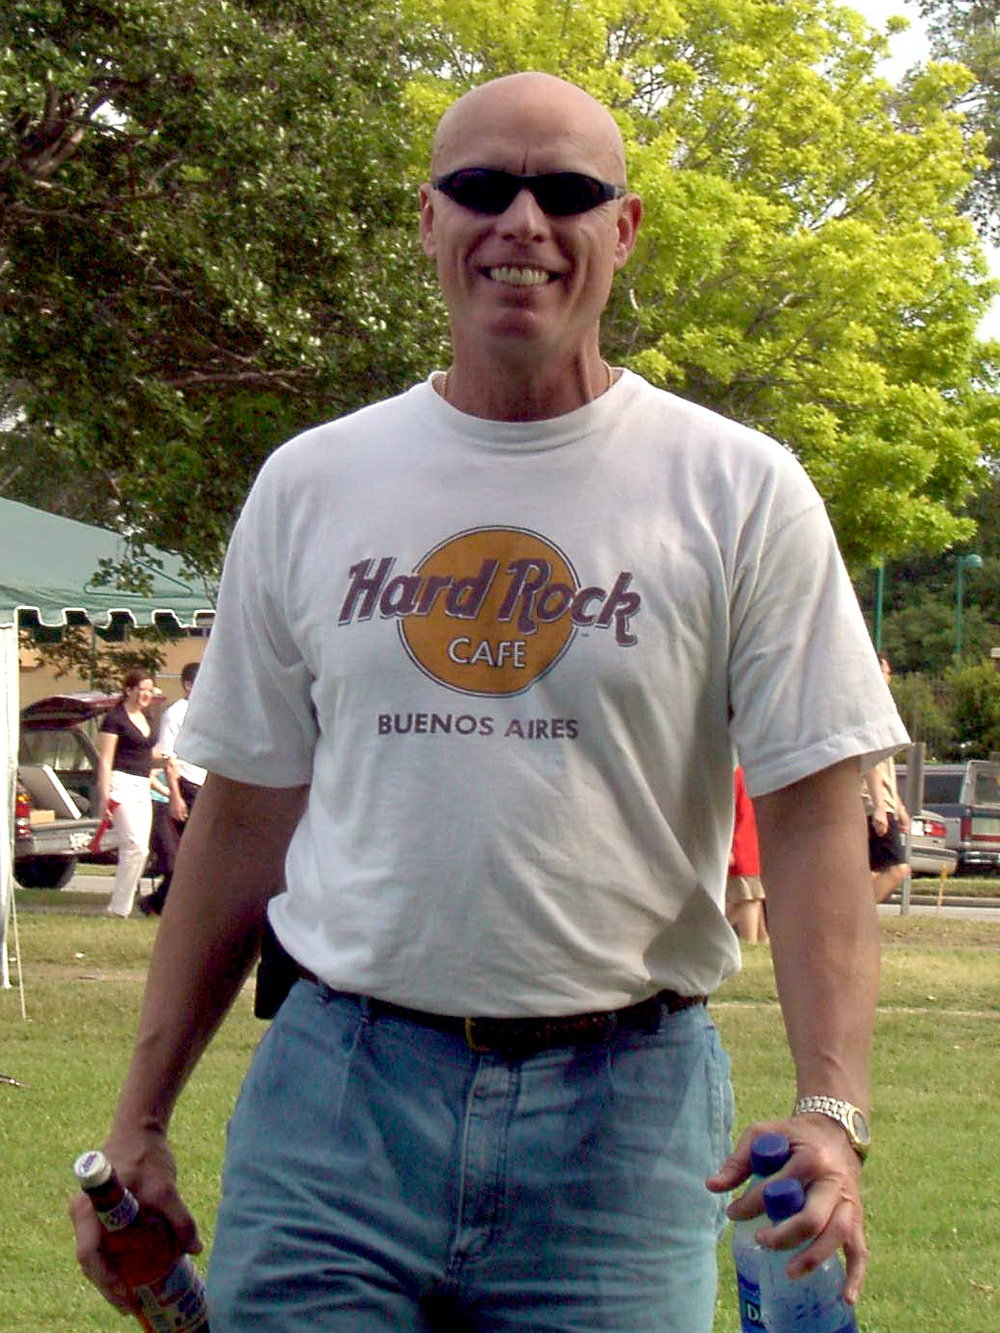 Bob McNeil - 2001 - Age 52 - Attending a Festival in Houston, Texas